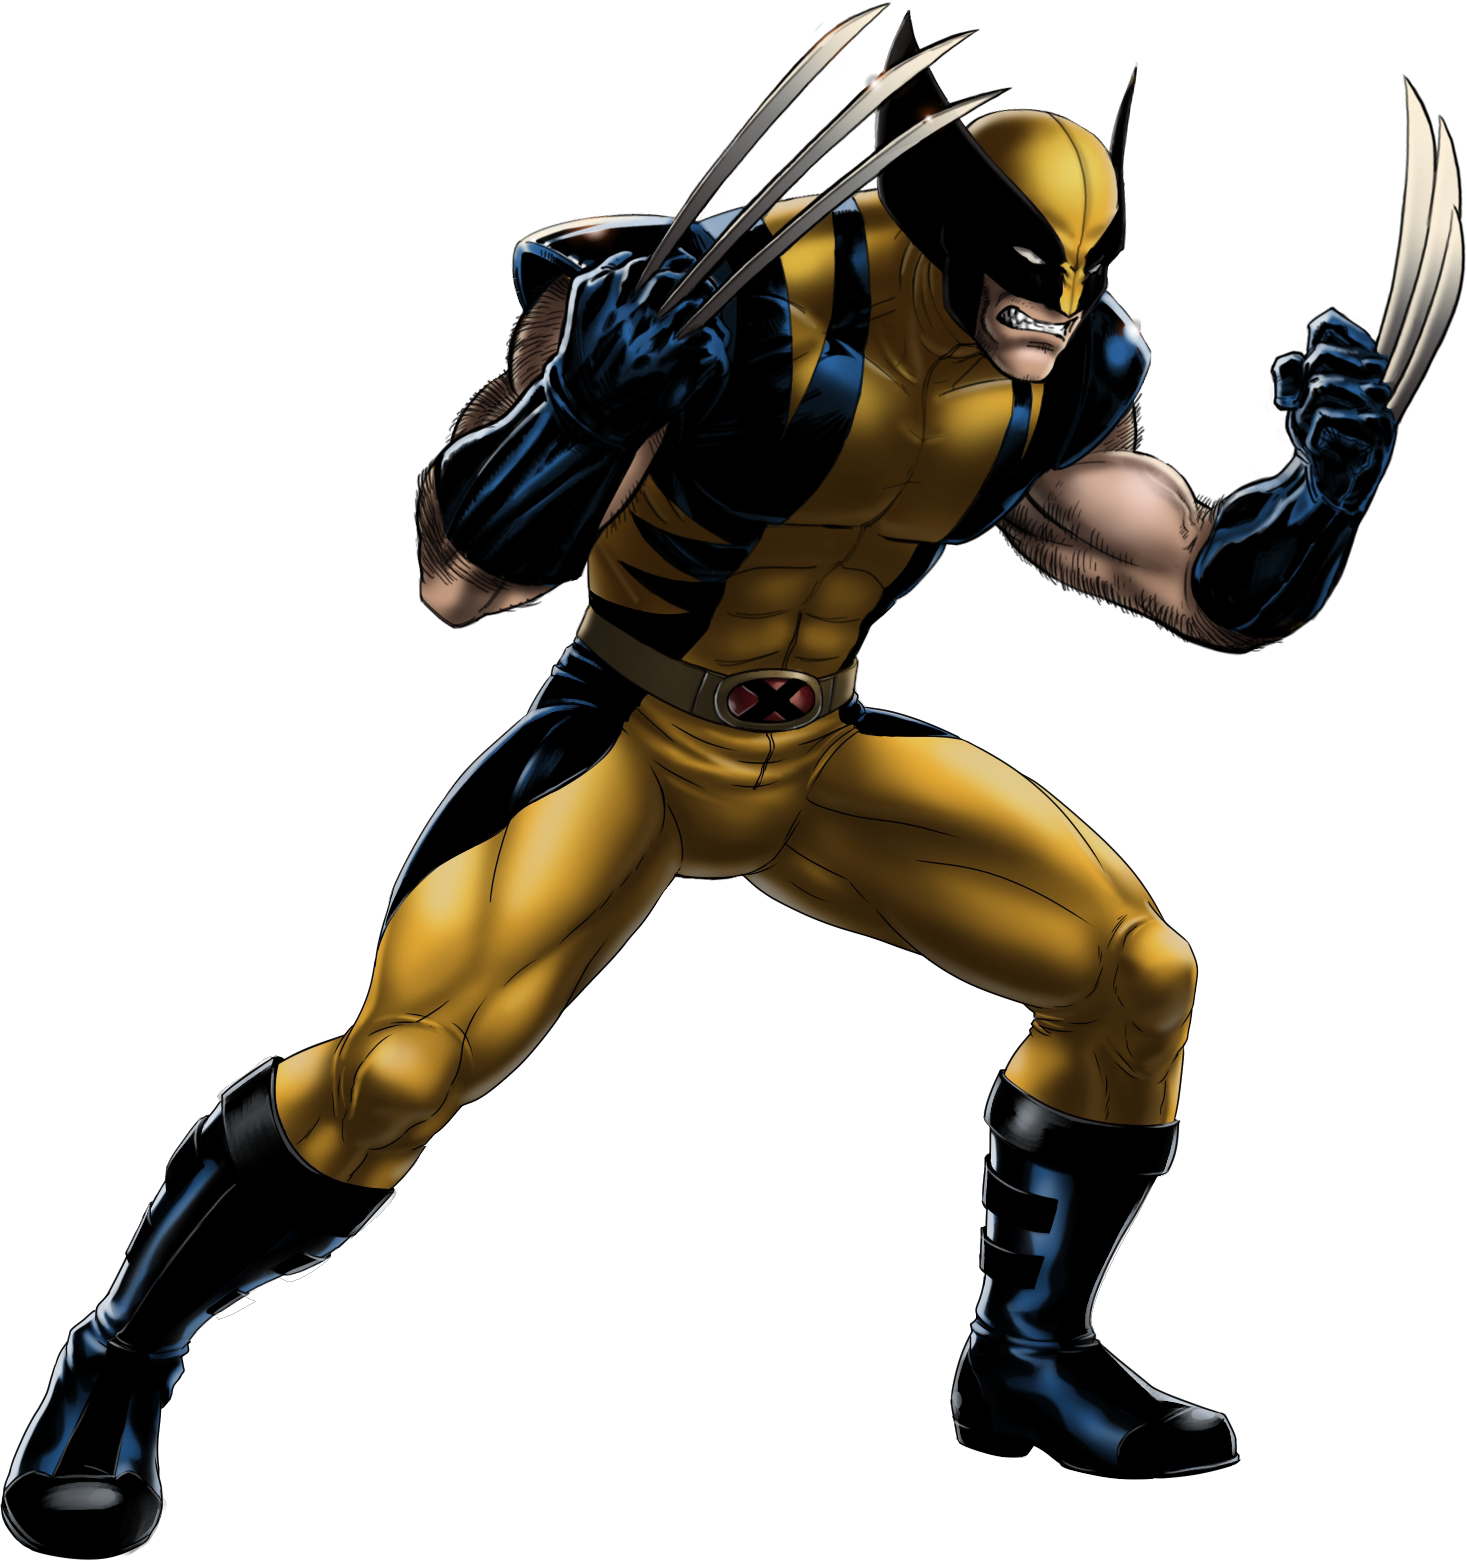 Image - Wolverine Portrait Art.png | Marvel: Avengers Alliance Wiki |  FANDOM powered by Wikia - Wolverine PNG